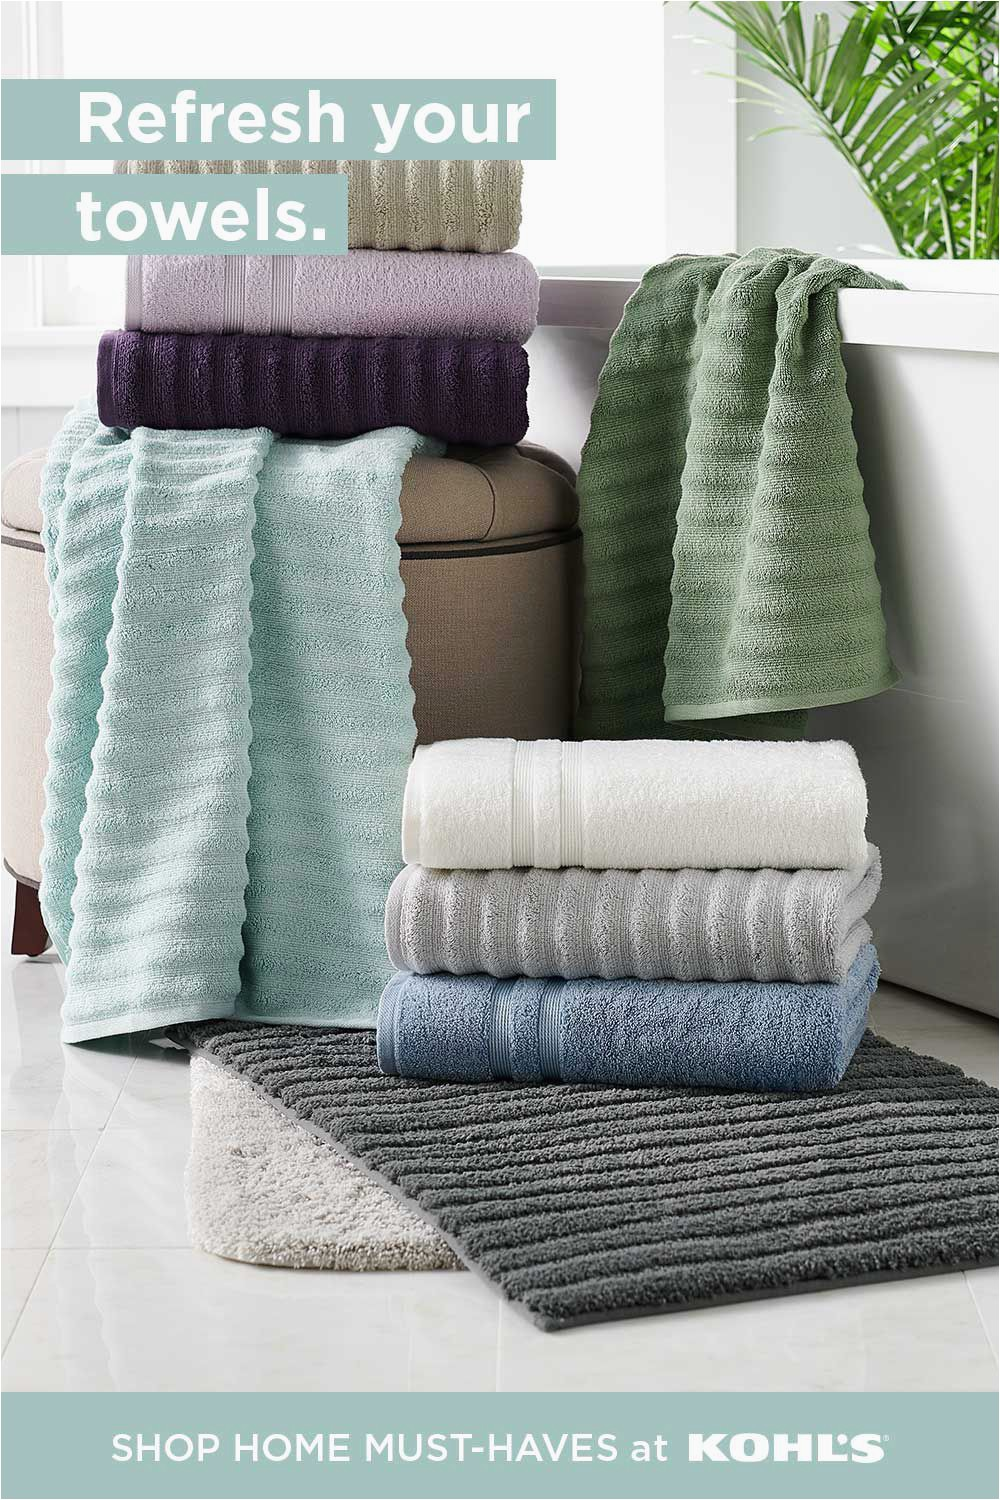 Kohls Bath Rugs sonoma Find Bath towels Bath Rugs at Kohl S In 2020